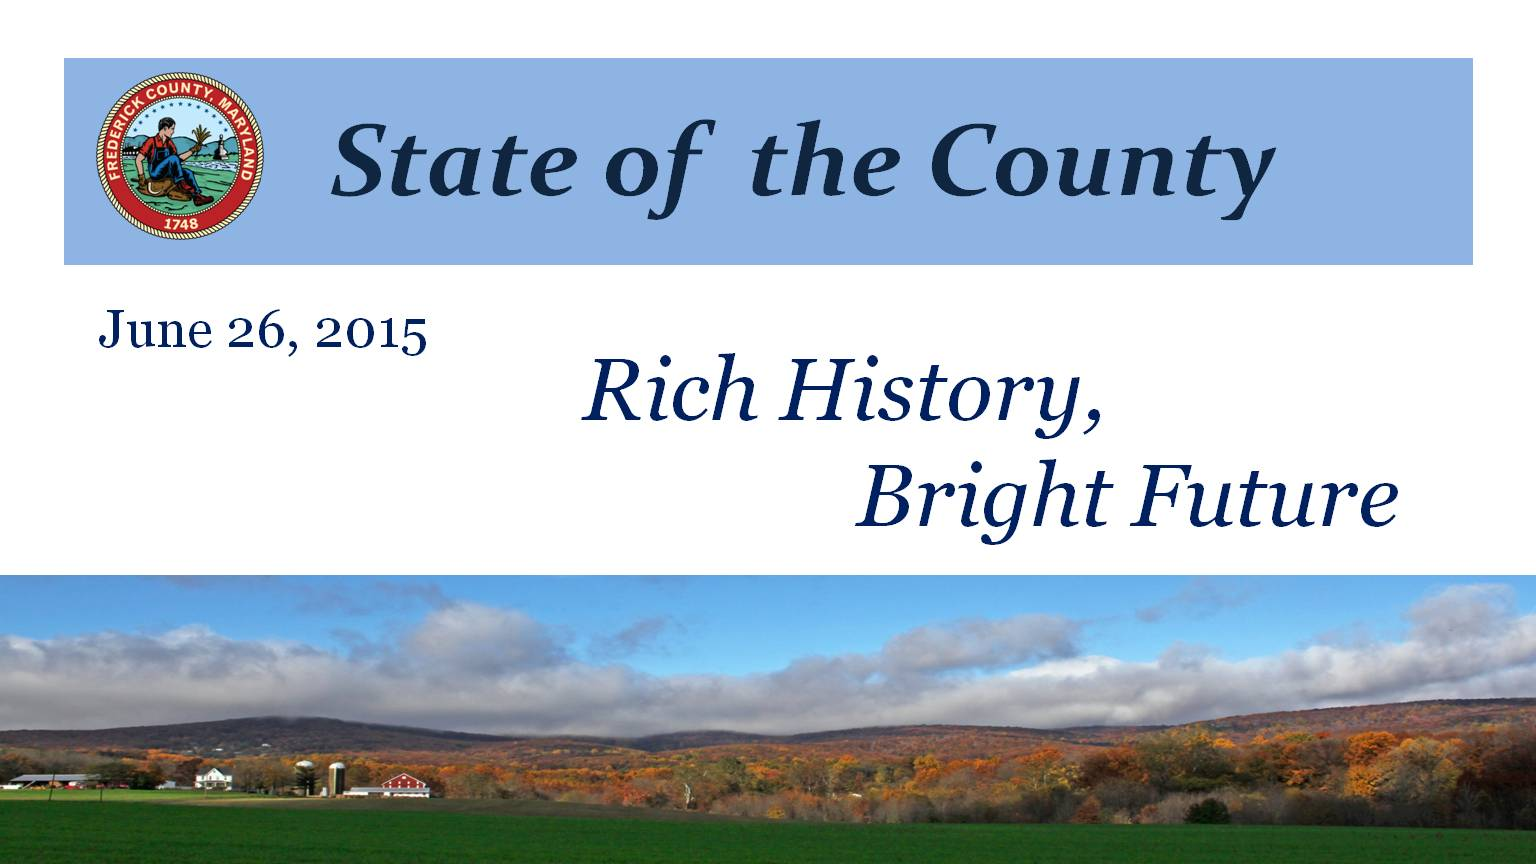 State of County Intro Slide Revised.jpg